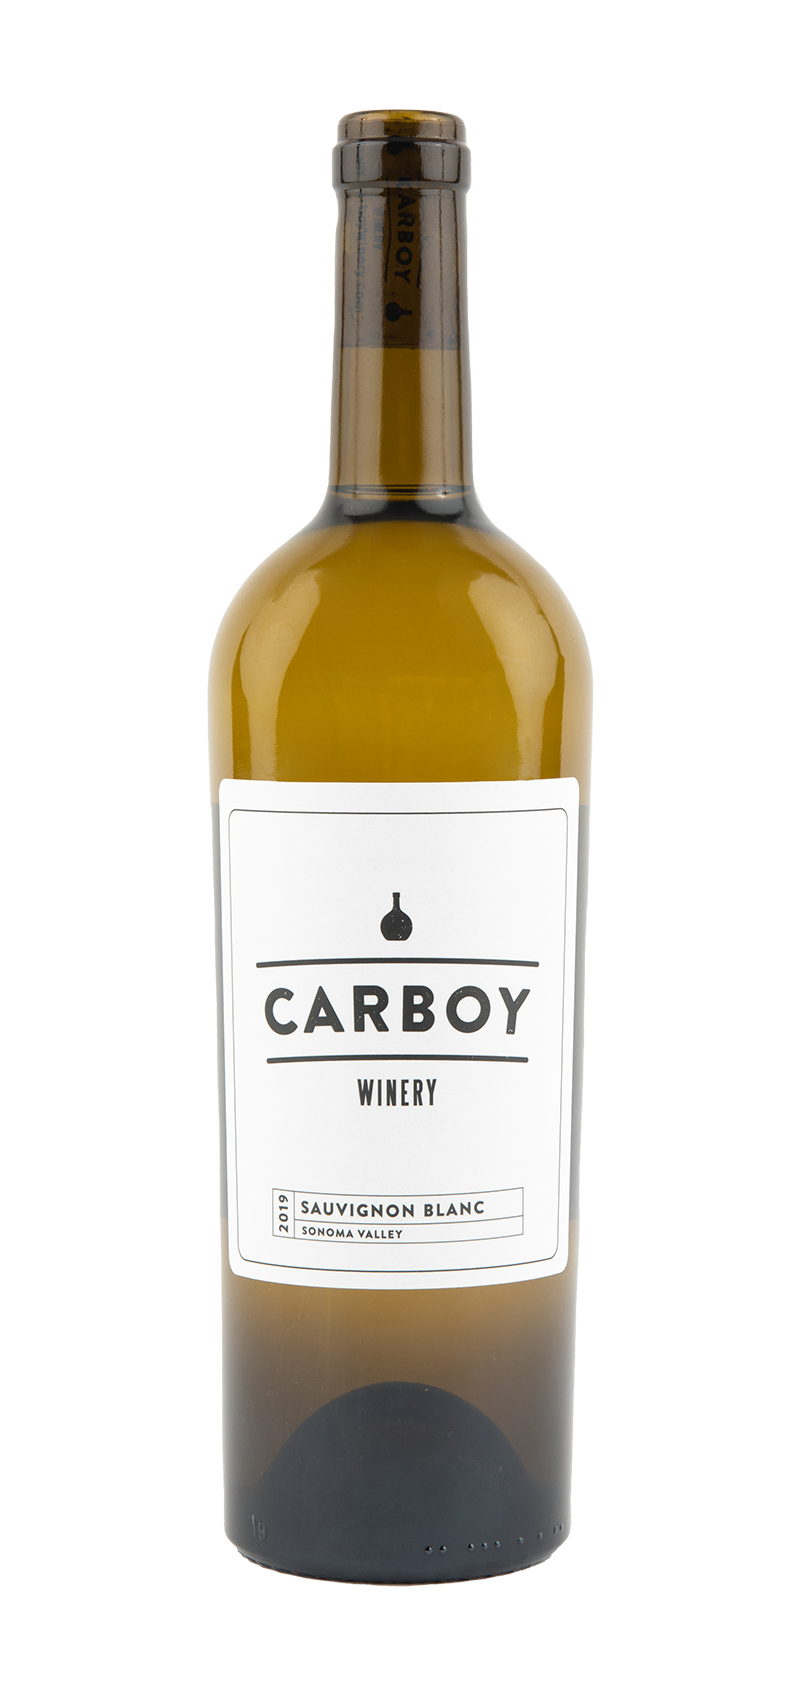 Bottle of Carboy Winery's Sauvignon Blanc wine.